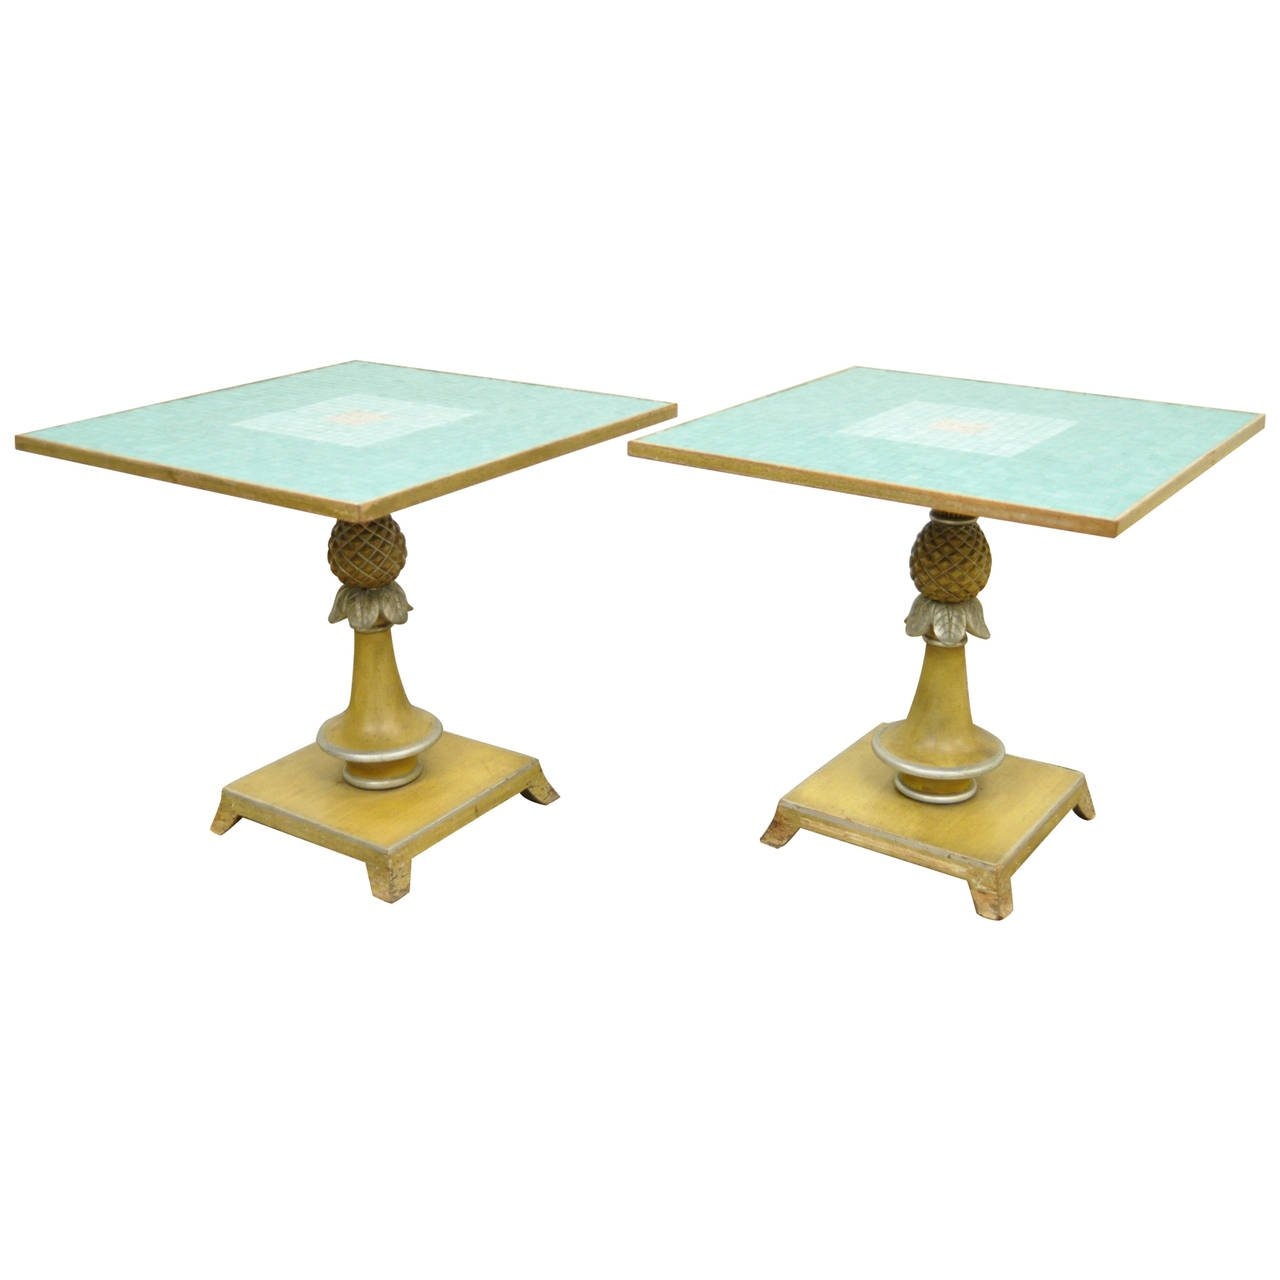 the outrageous great pineapple end table gallery jockboymusic vintage gilded accent for pair italian carved wood mosaic tile top form tables steve silver company coffee mission